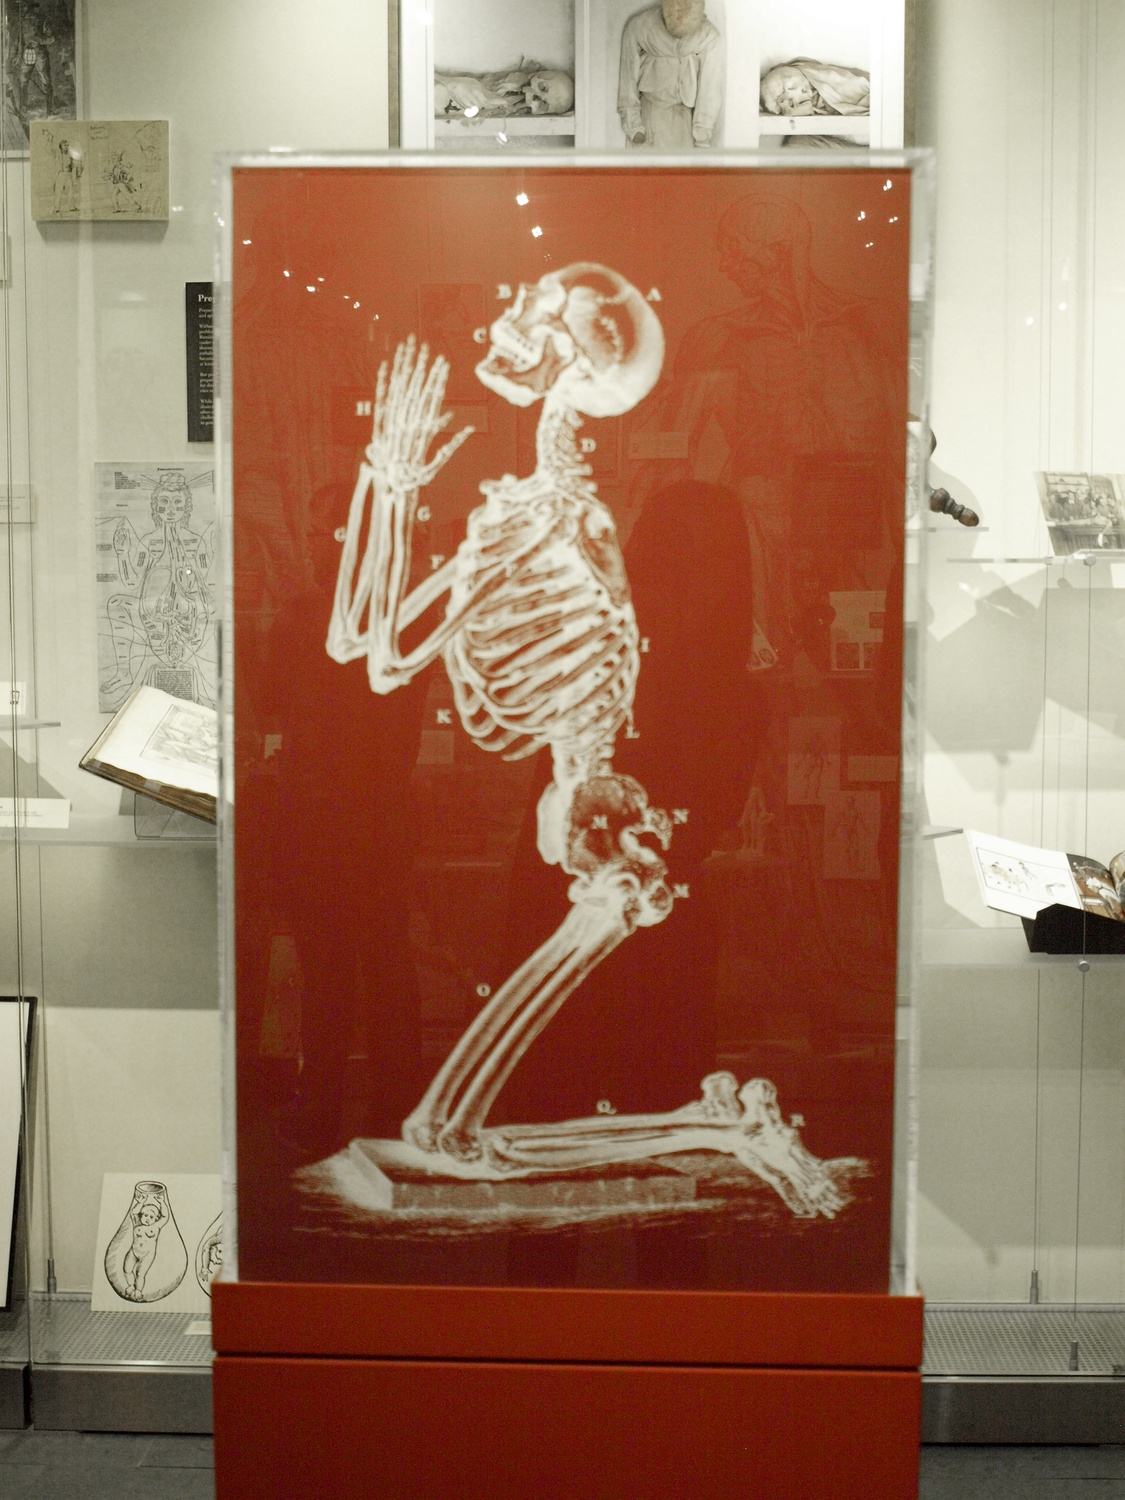 New Exhibit Explores History and Science of Human Dissection | News ...